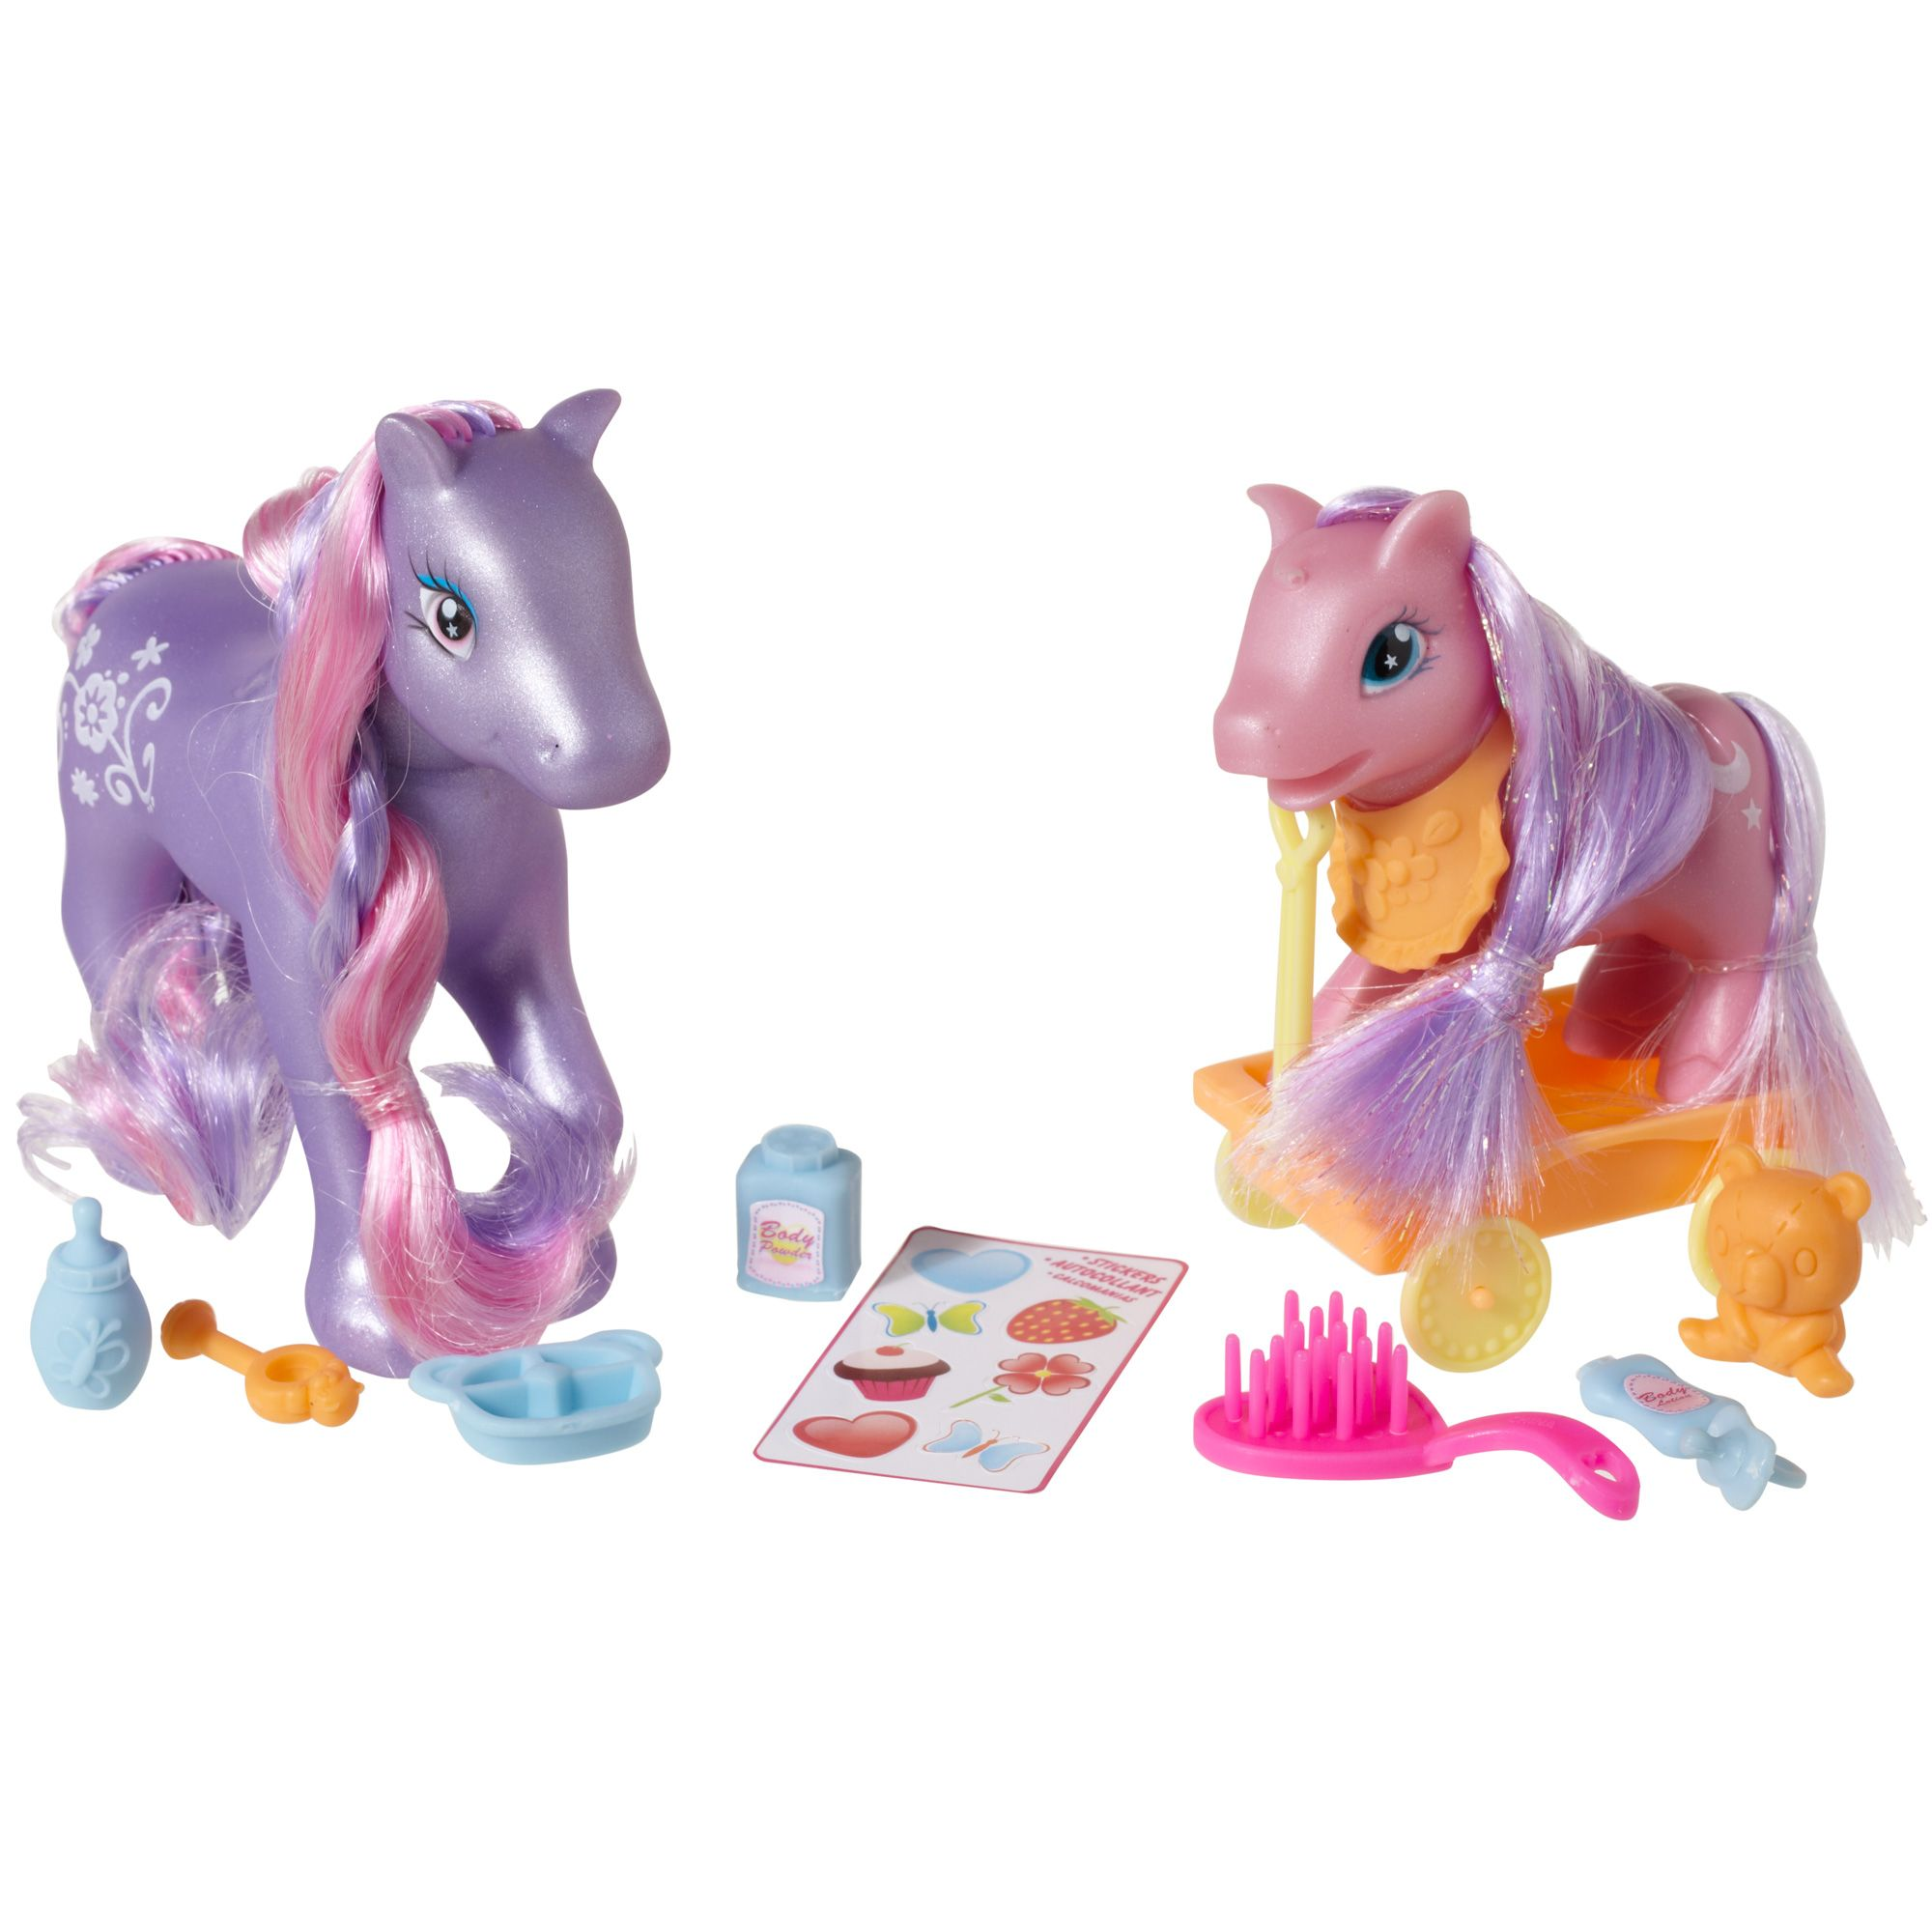 Playful ponies handbag